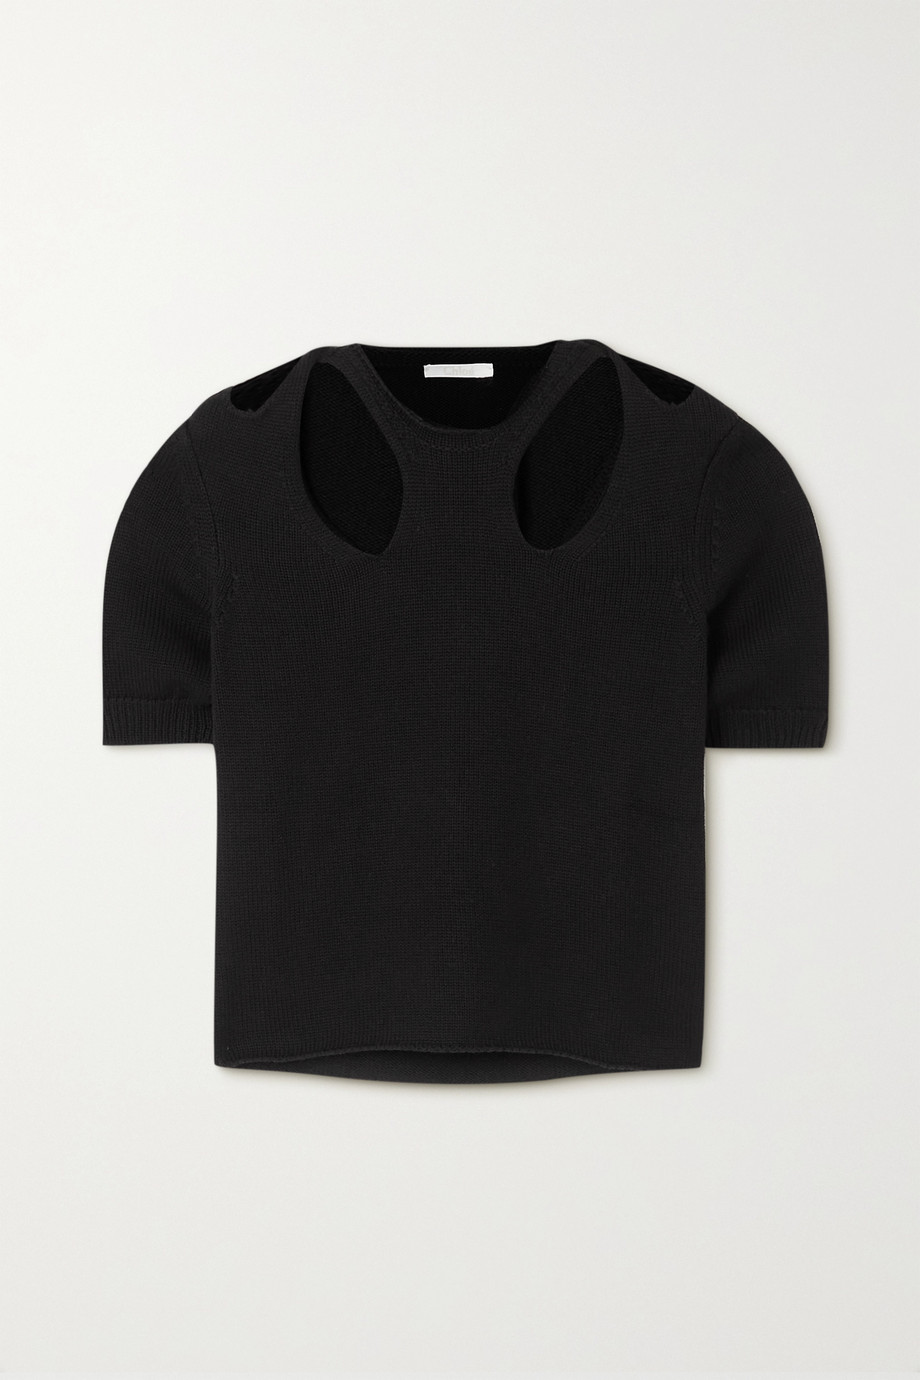 Chloé Cutout cotton and wool-blend sweater